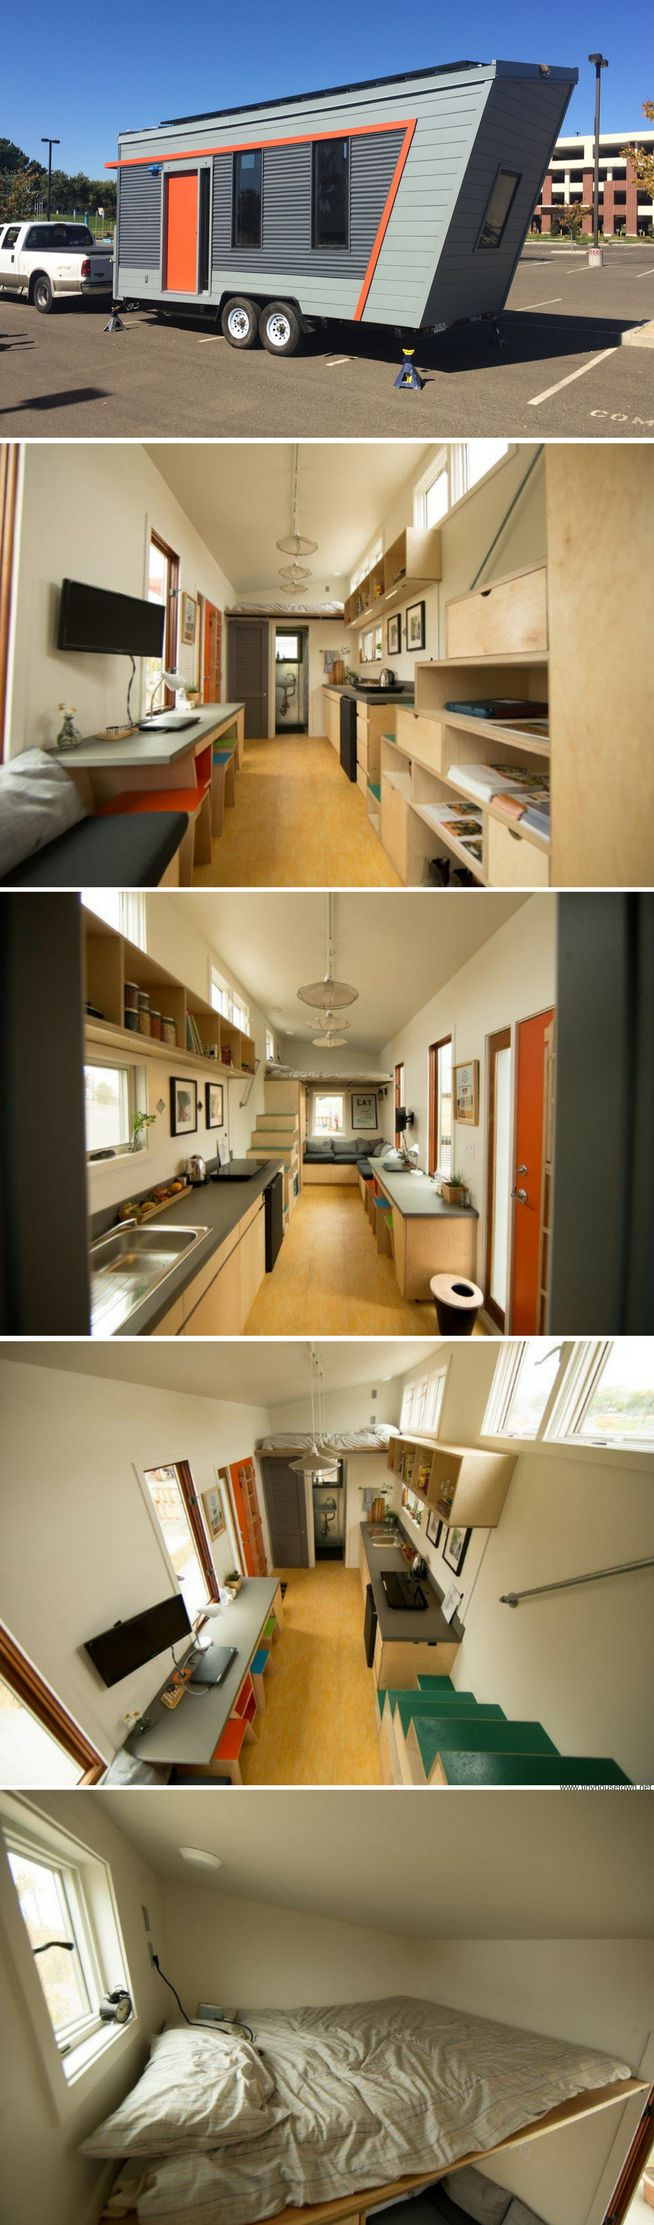 209 best Modern Style Tiny Houses images on Pinterest Tiny house